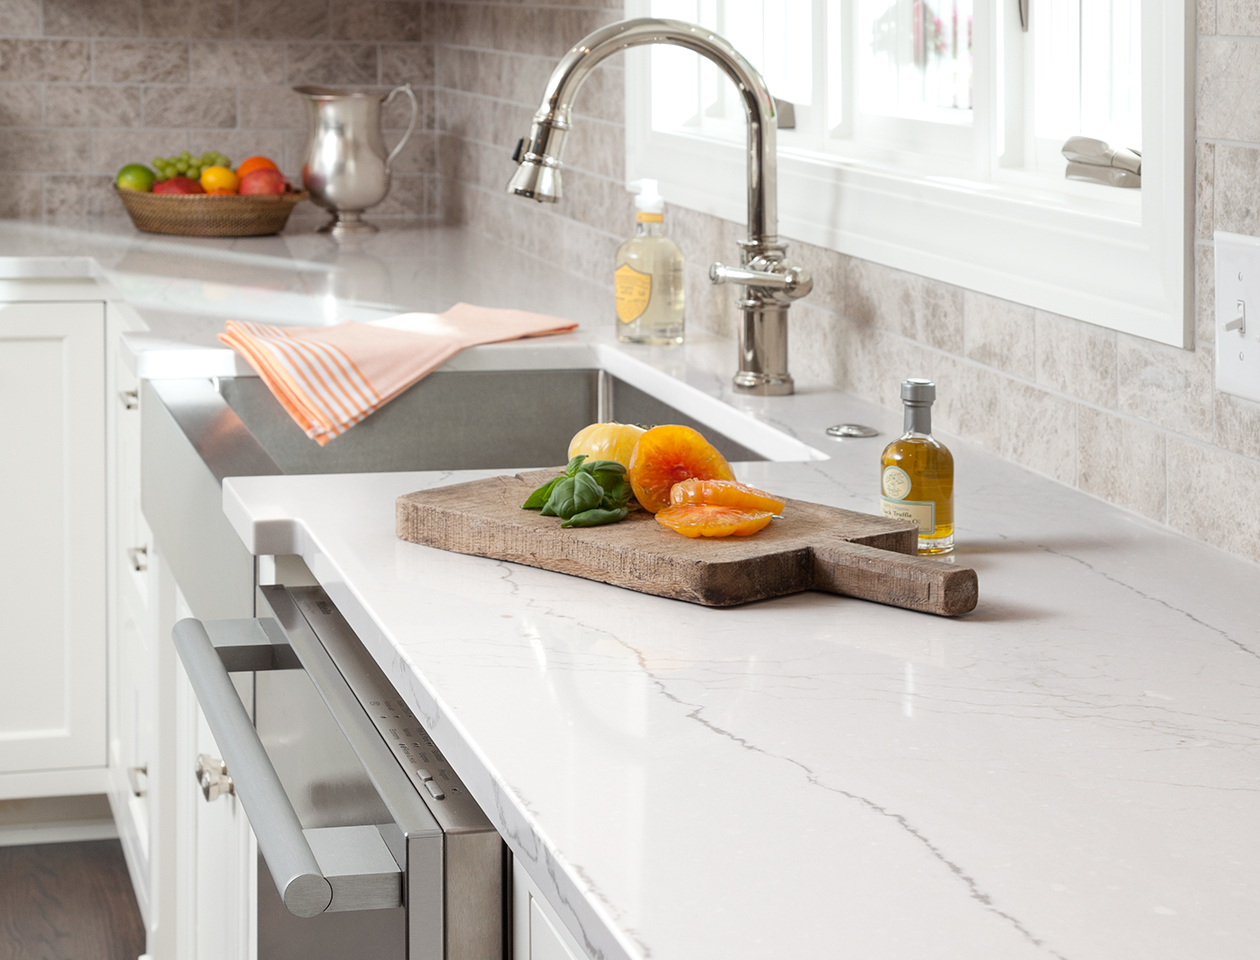 Photo Of A Quartz Countertop